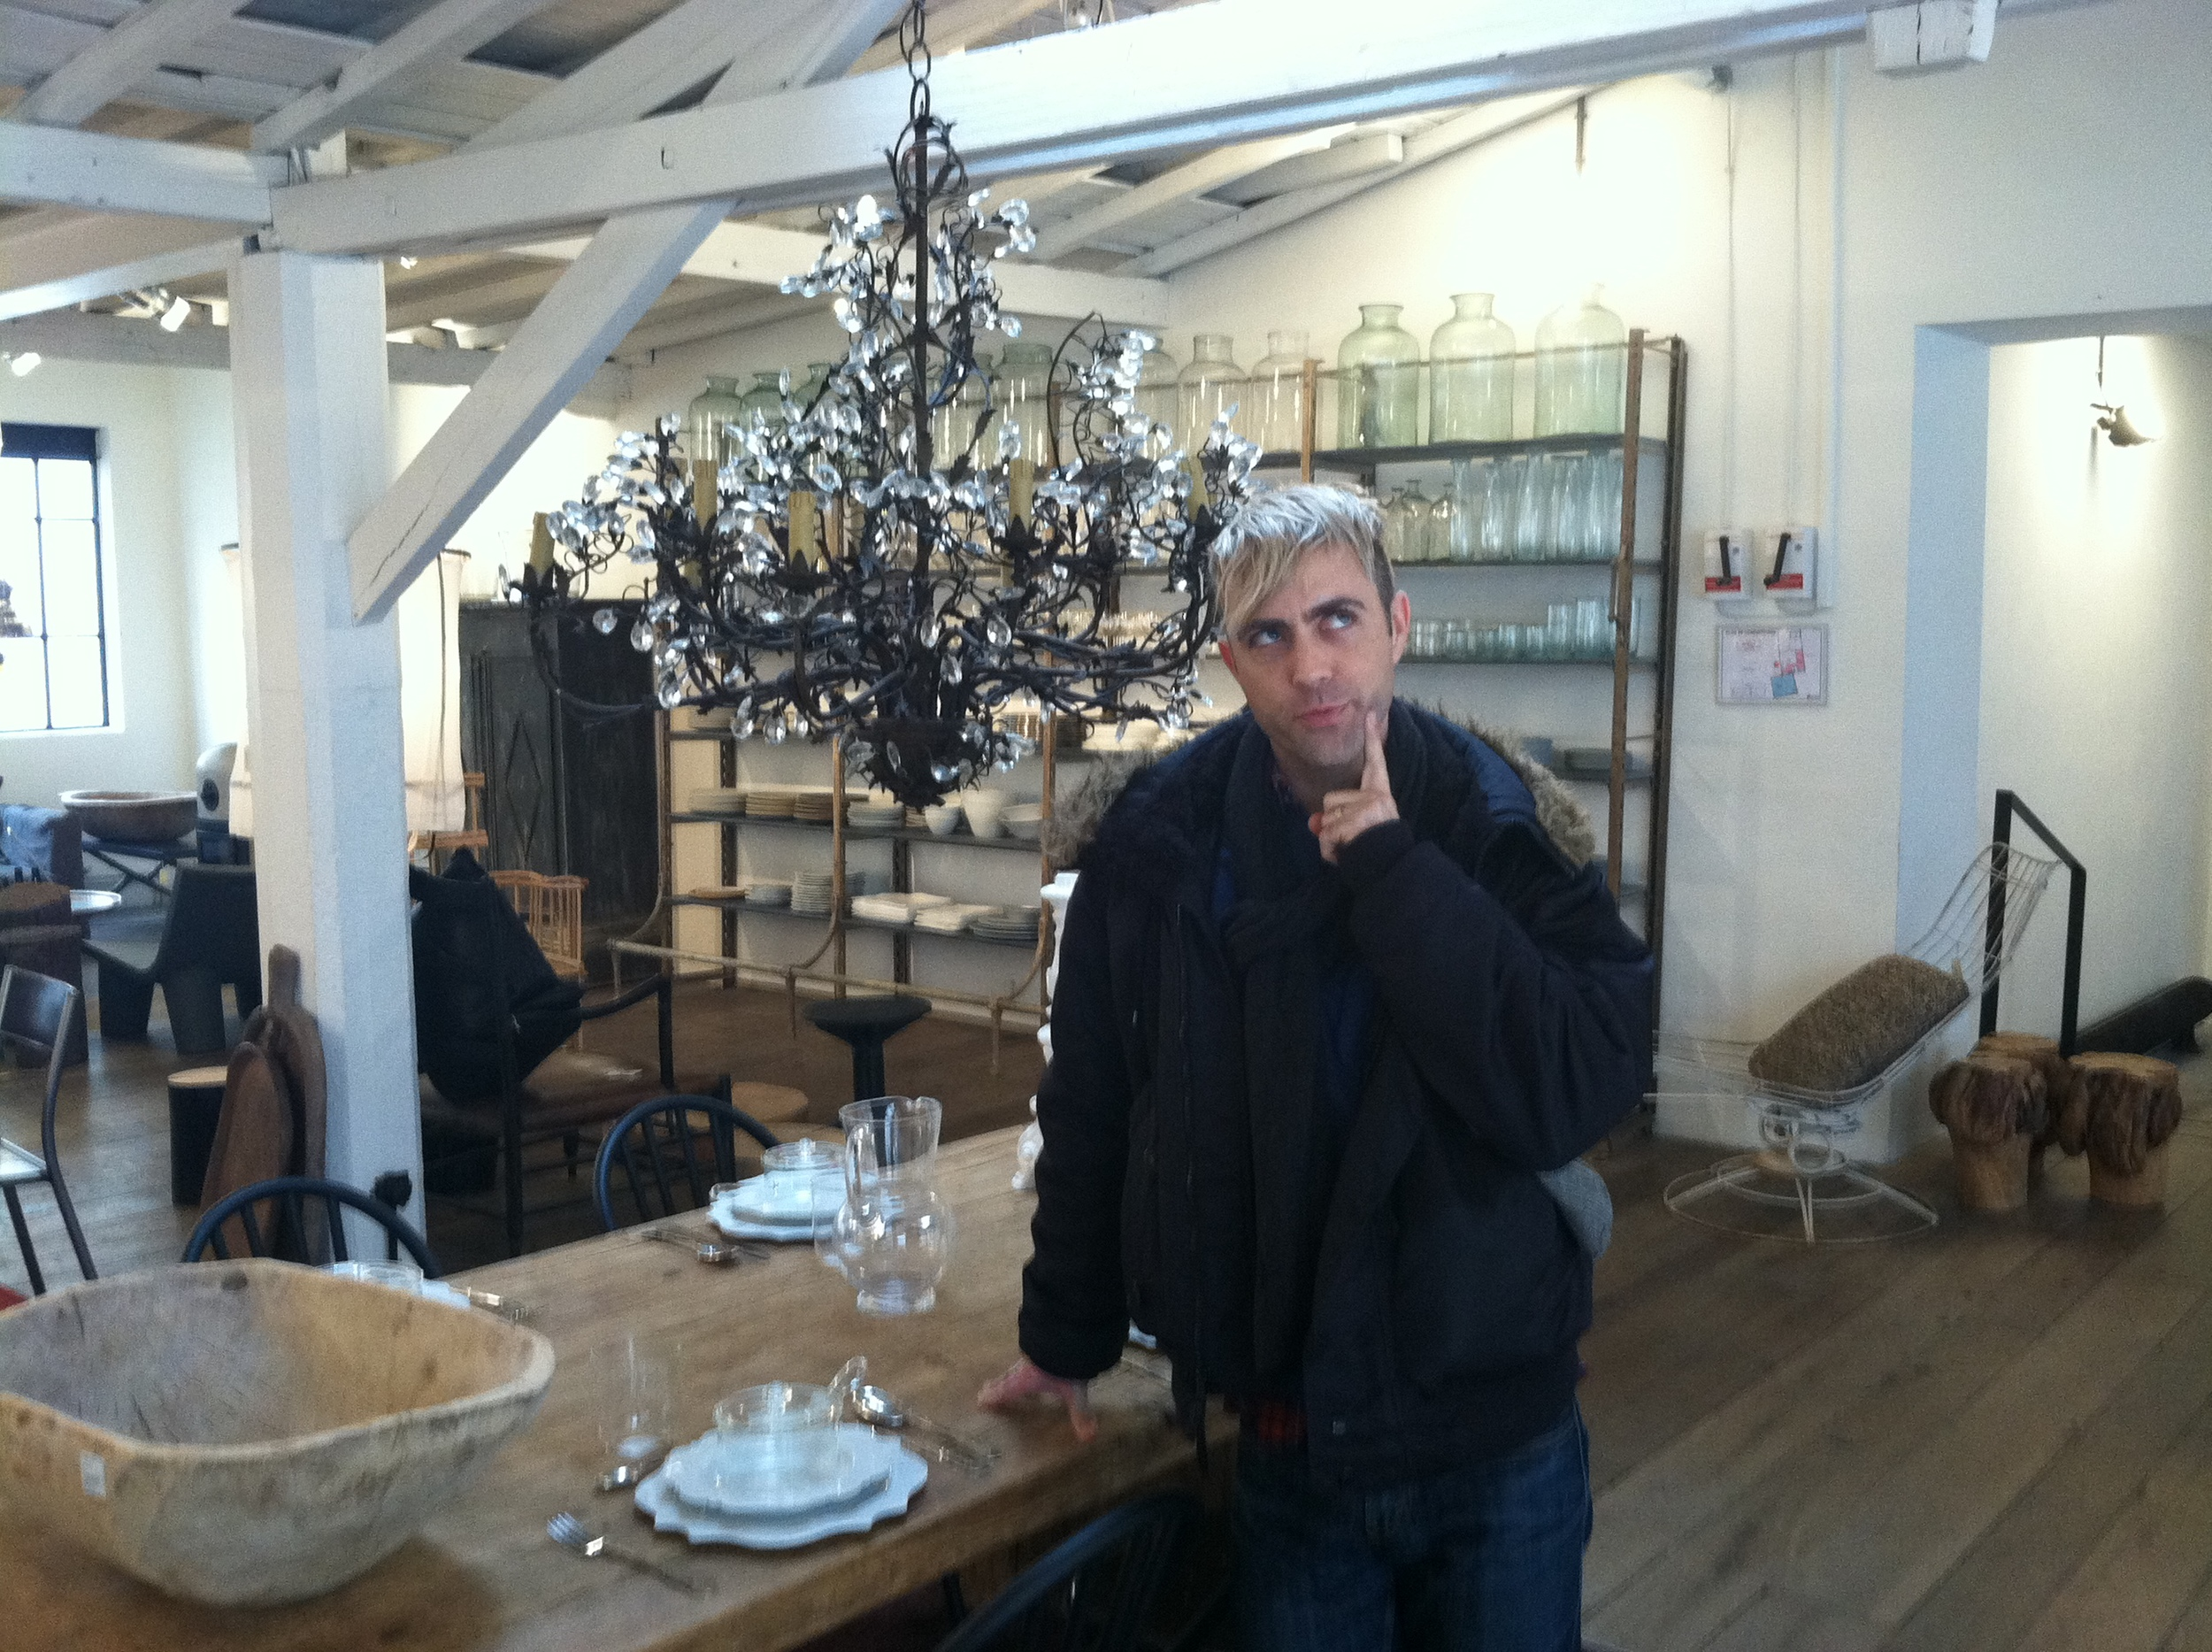 PJ Mehaffey posing in front of dining table inside Merci